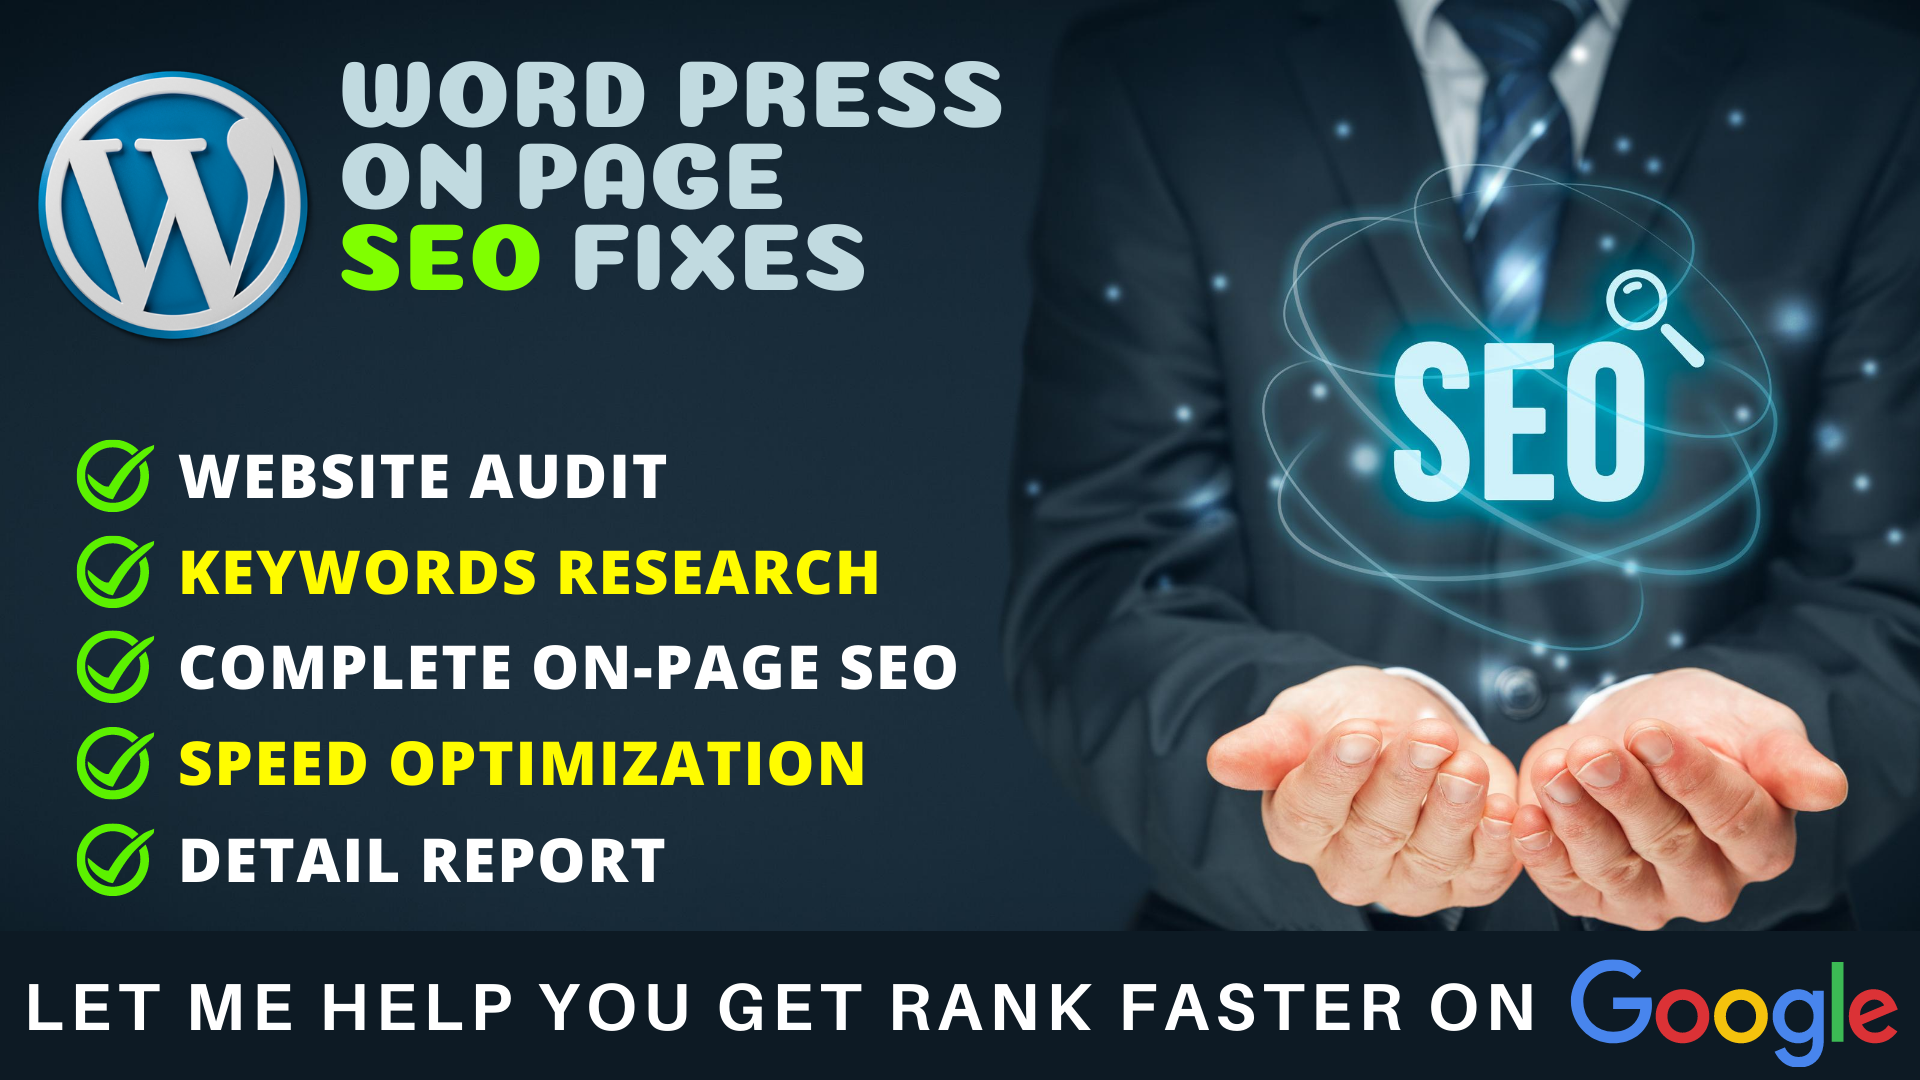 I will rank your website doing onpage SEO